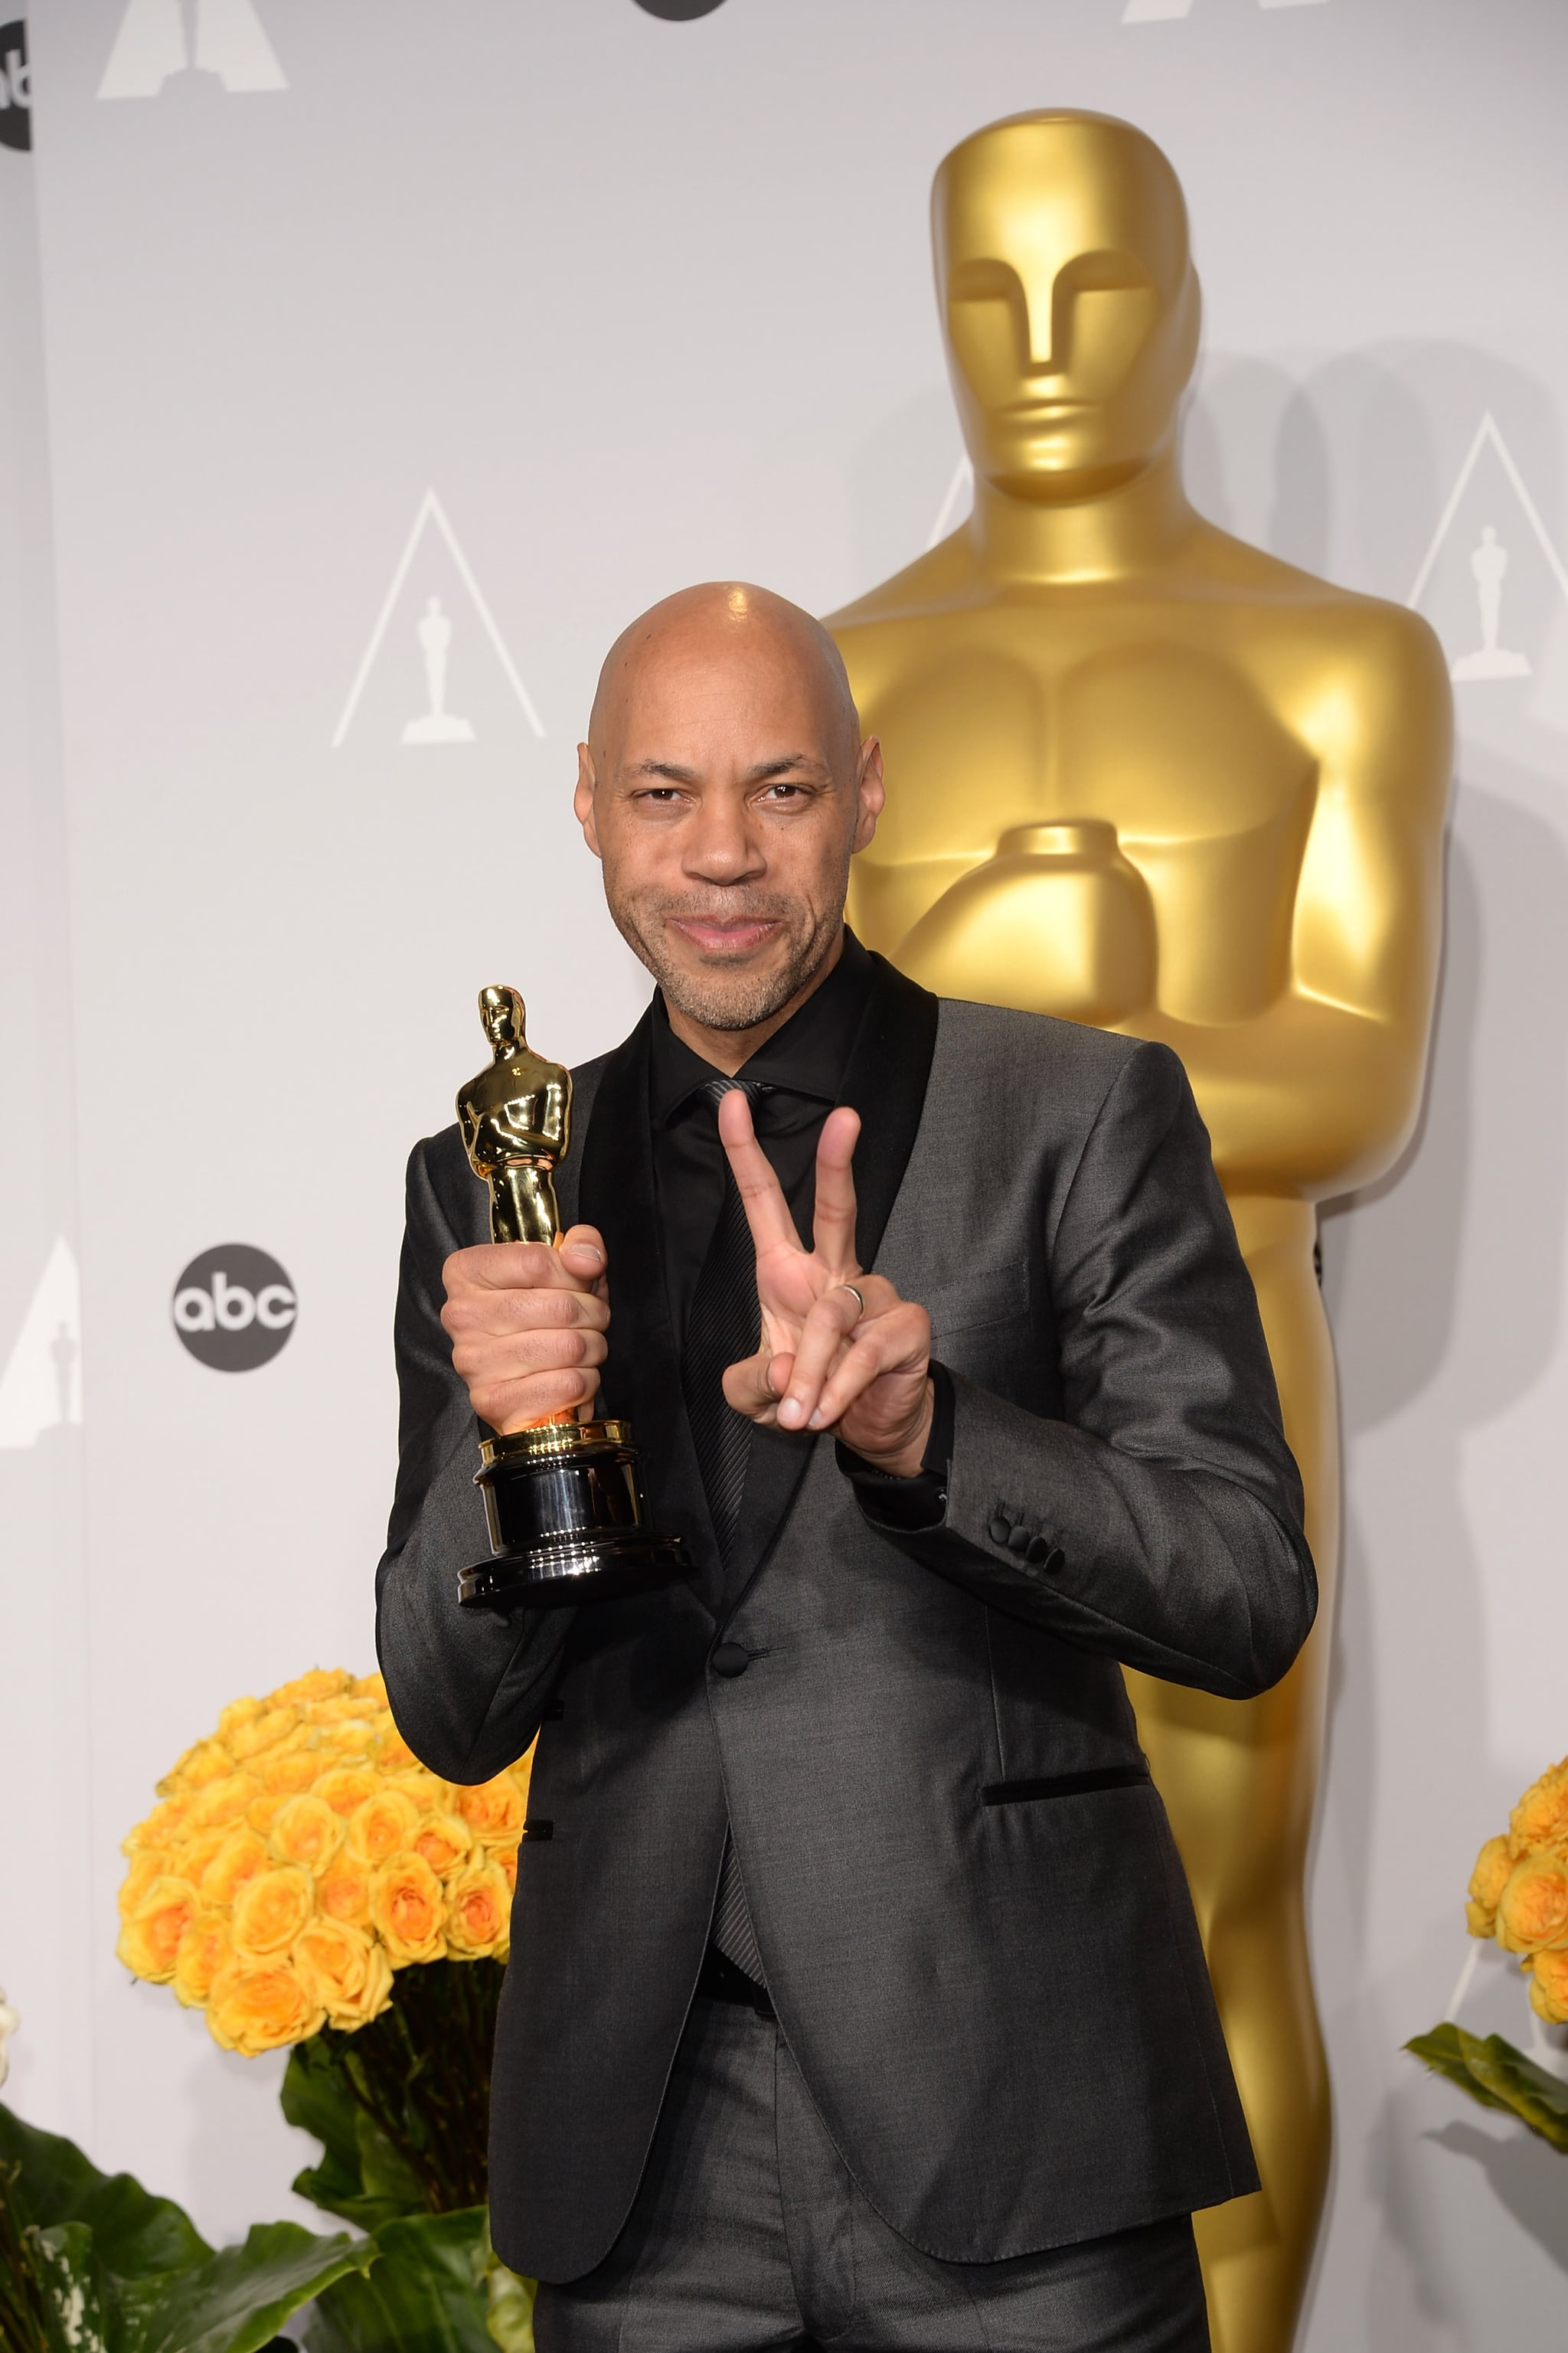 12 Years a Slave writer John Ridley flashed a peace sign with his Oscar for best adapted screenplay.